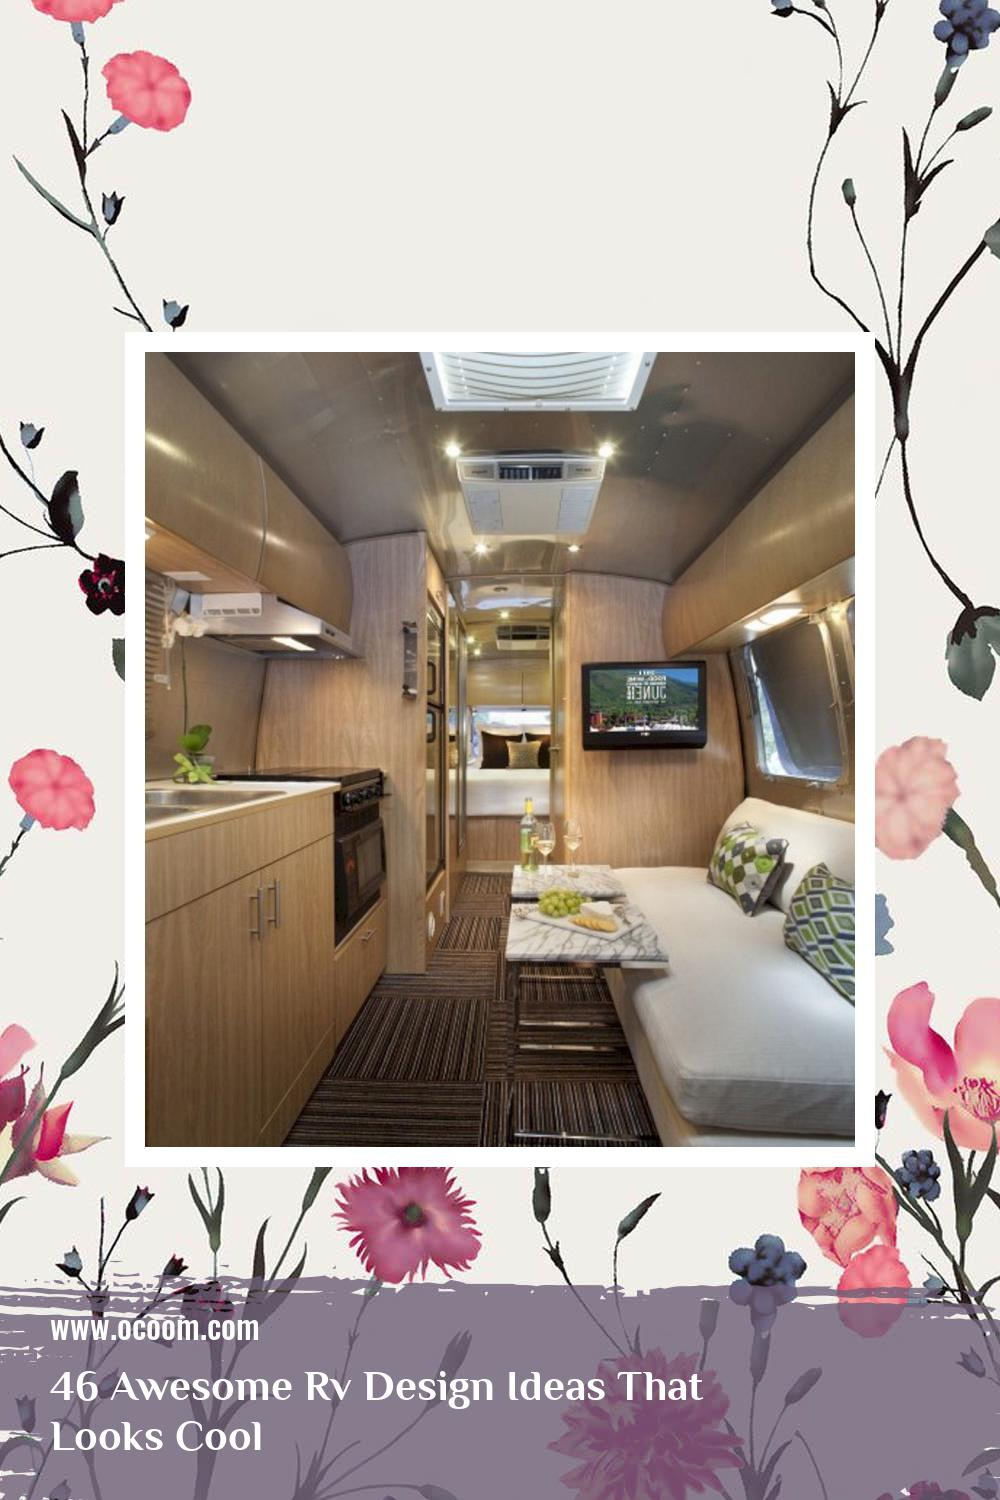 46 Awesome Rv Design Ideas That Looks Cool 40